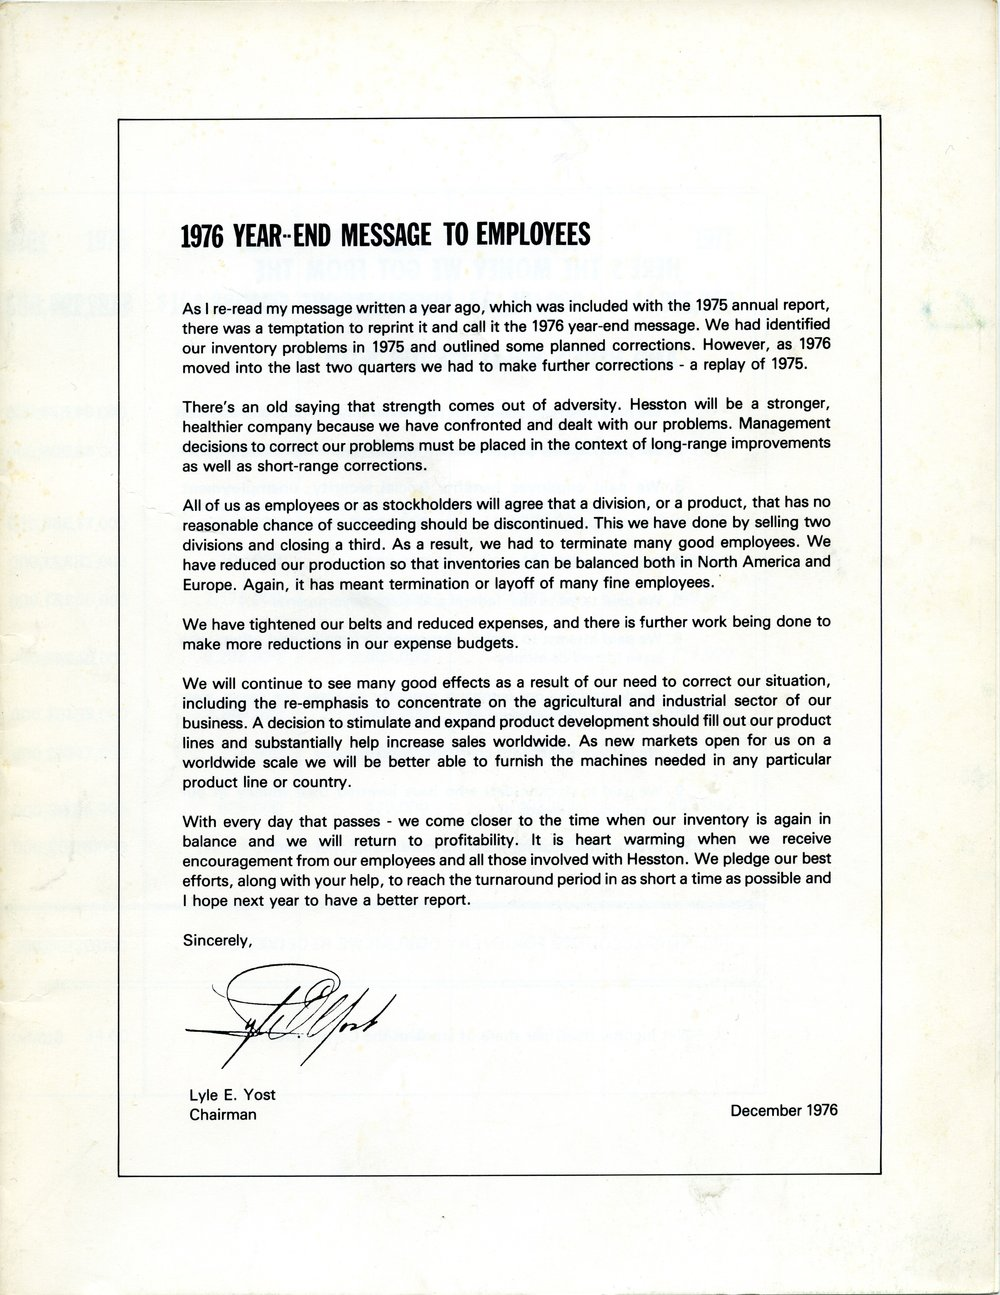 Employee message - cover